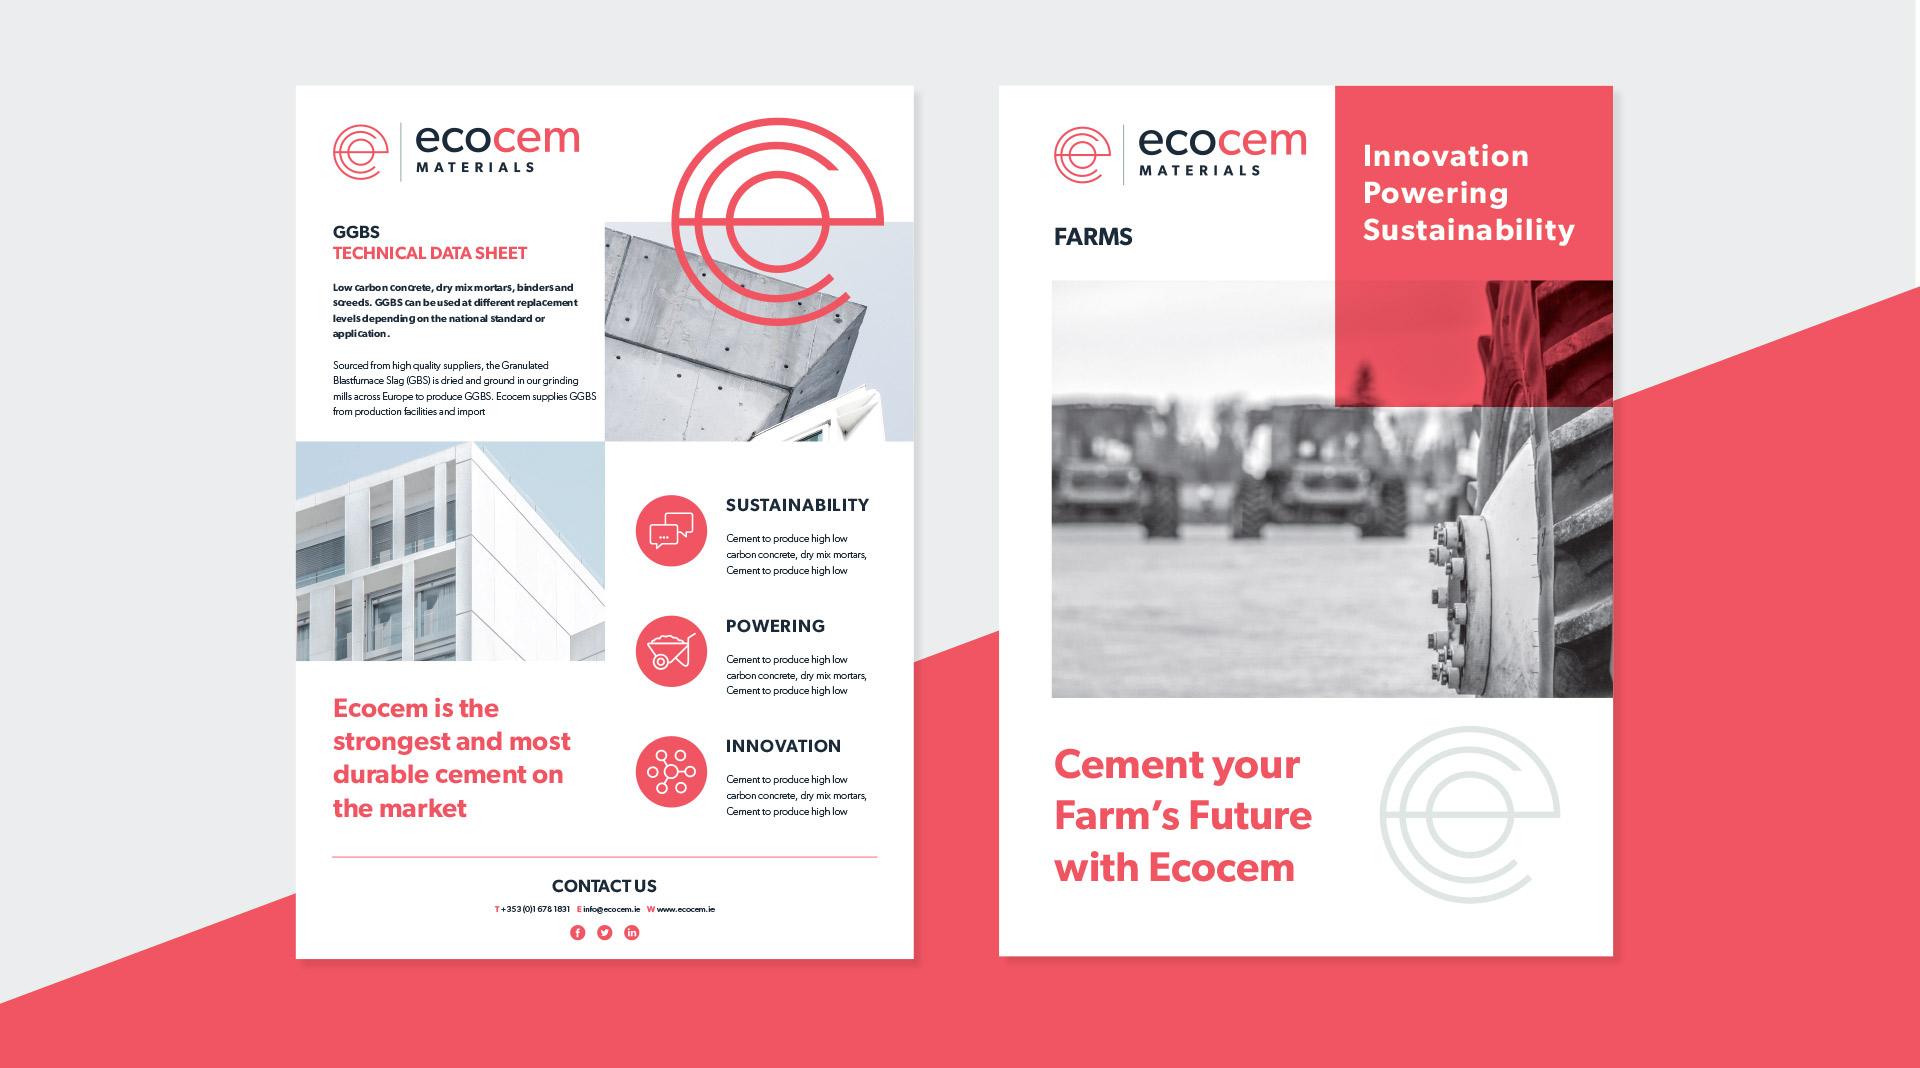 Ecocem materials design of brochure and data sheets